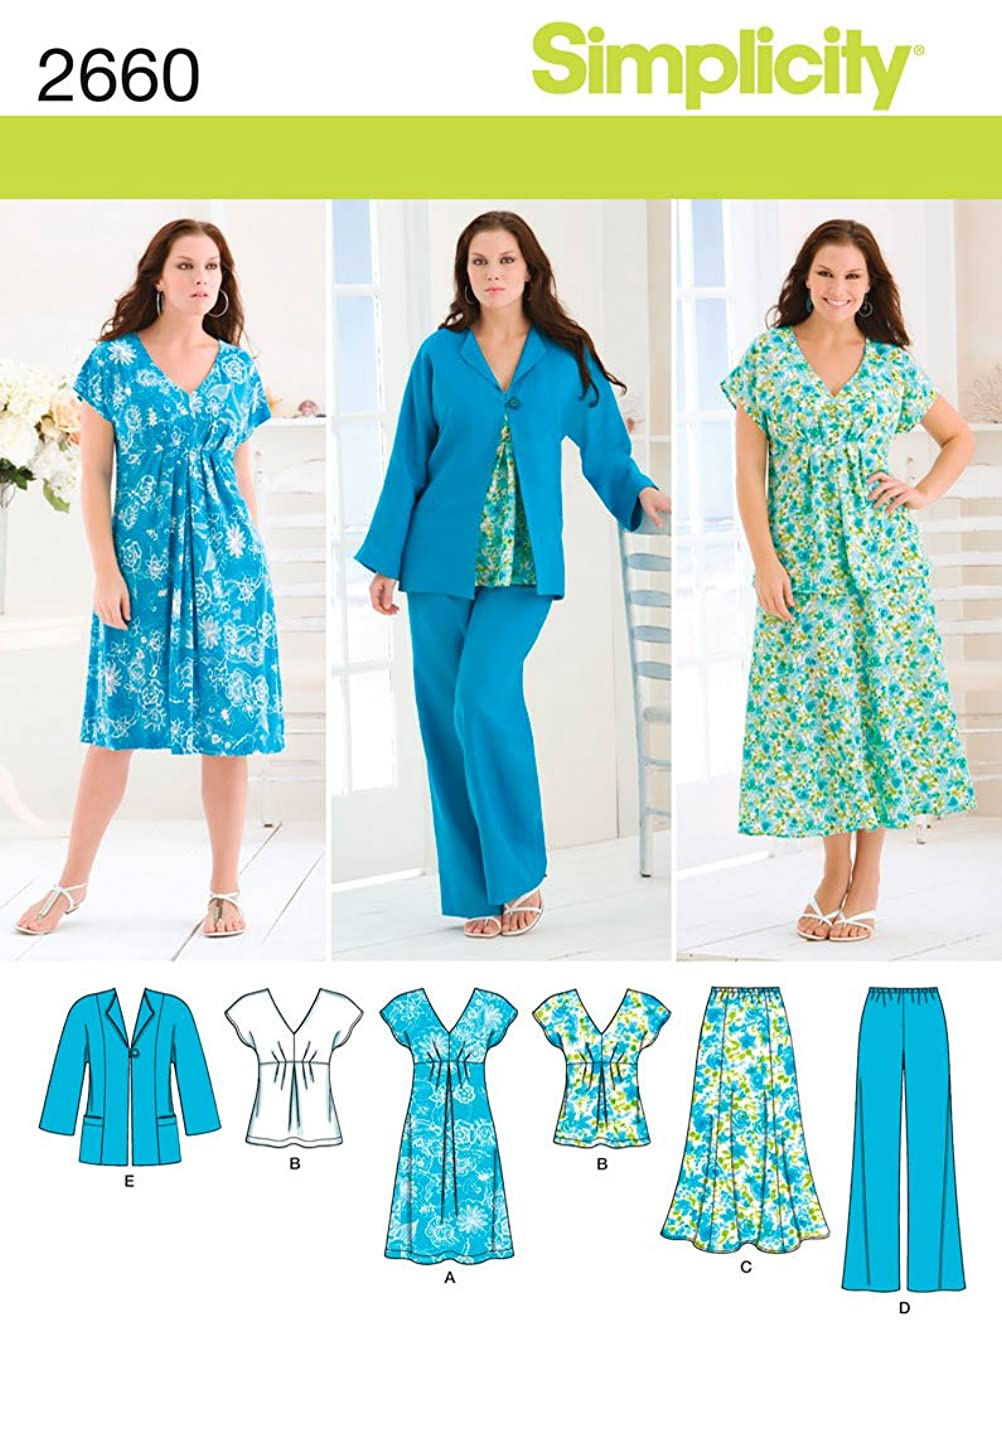 Simplicity Pattern 2660 Misses Skirt, Pants, Dress or Top and Jacket Sizes 10-12-14-16-18